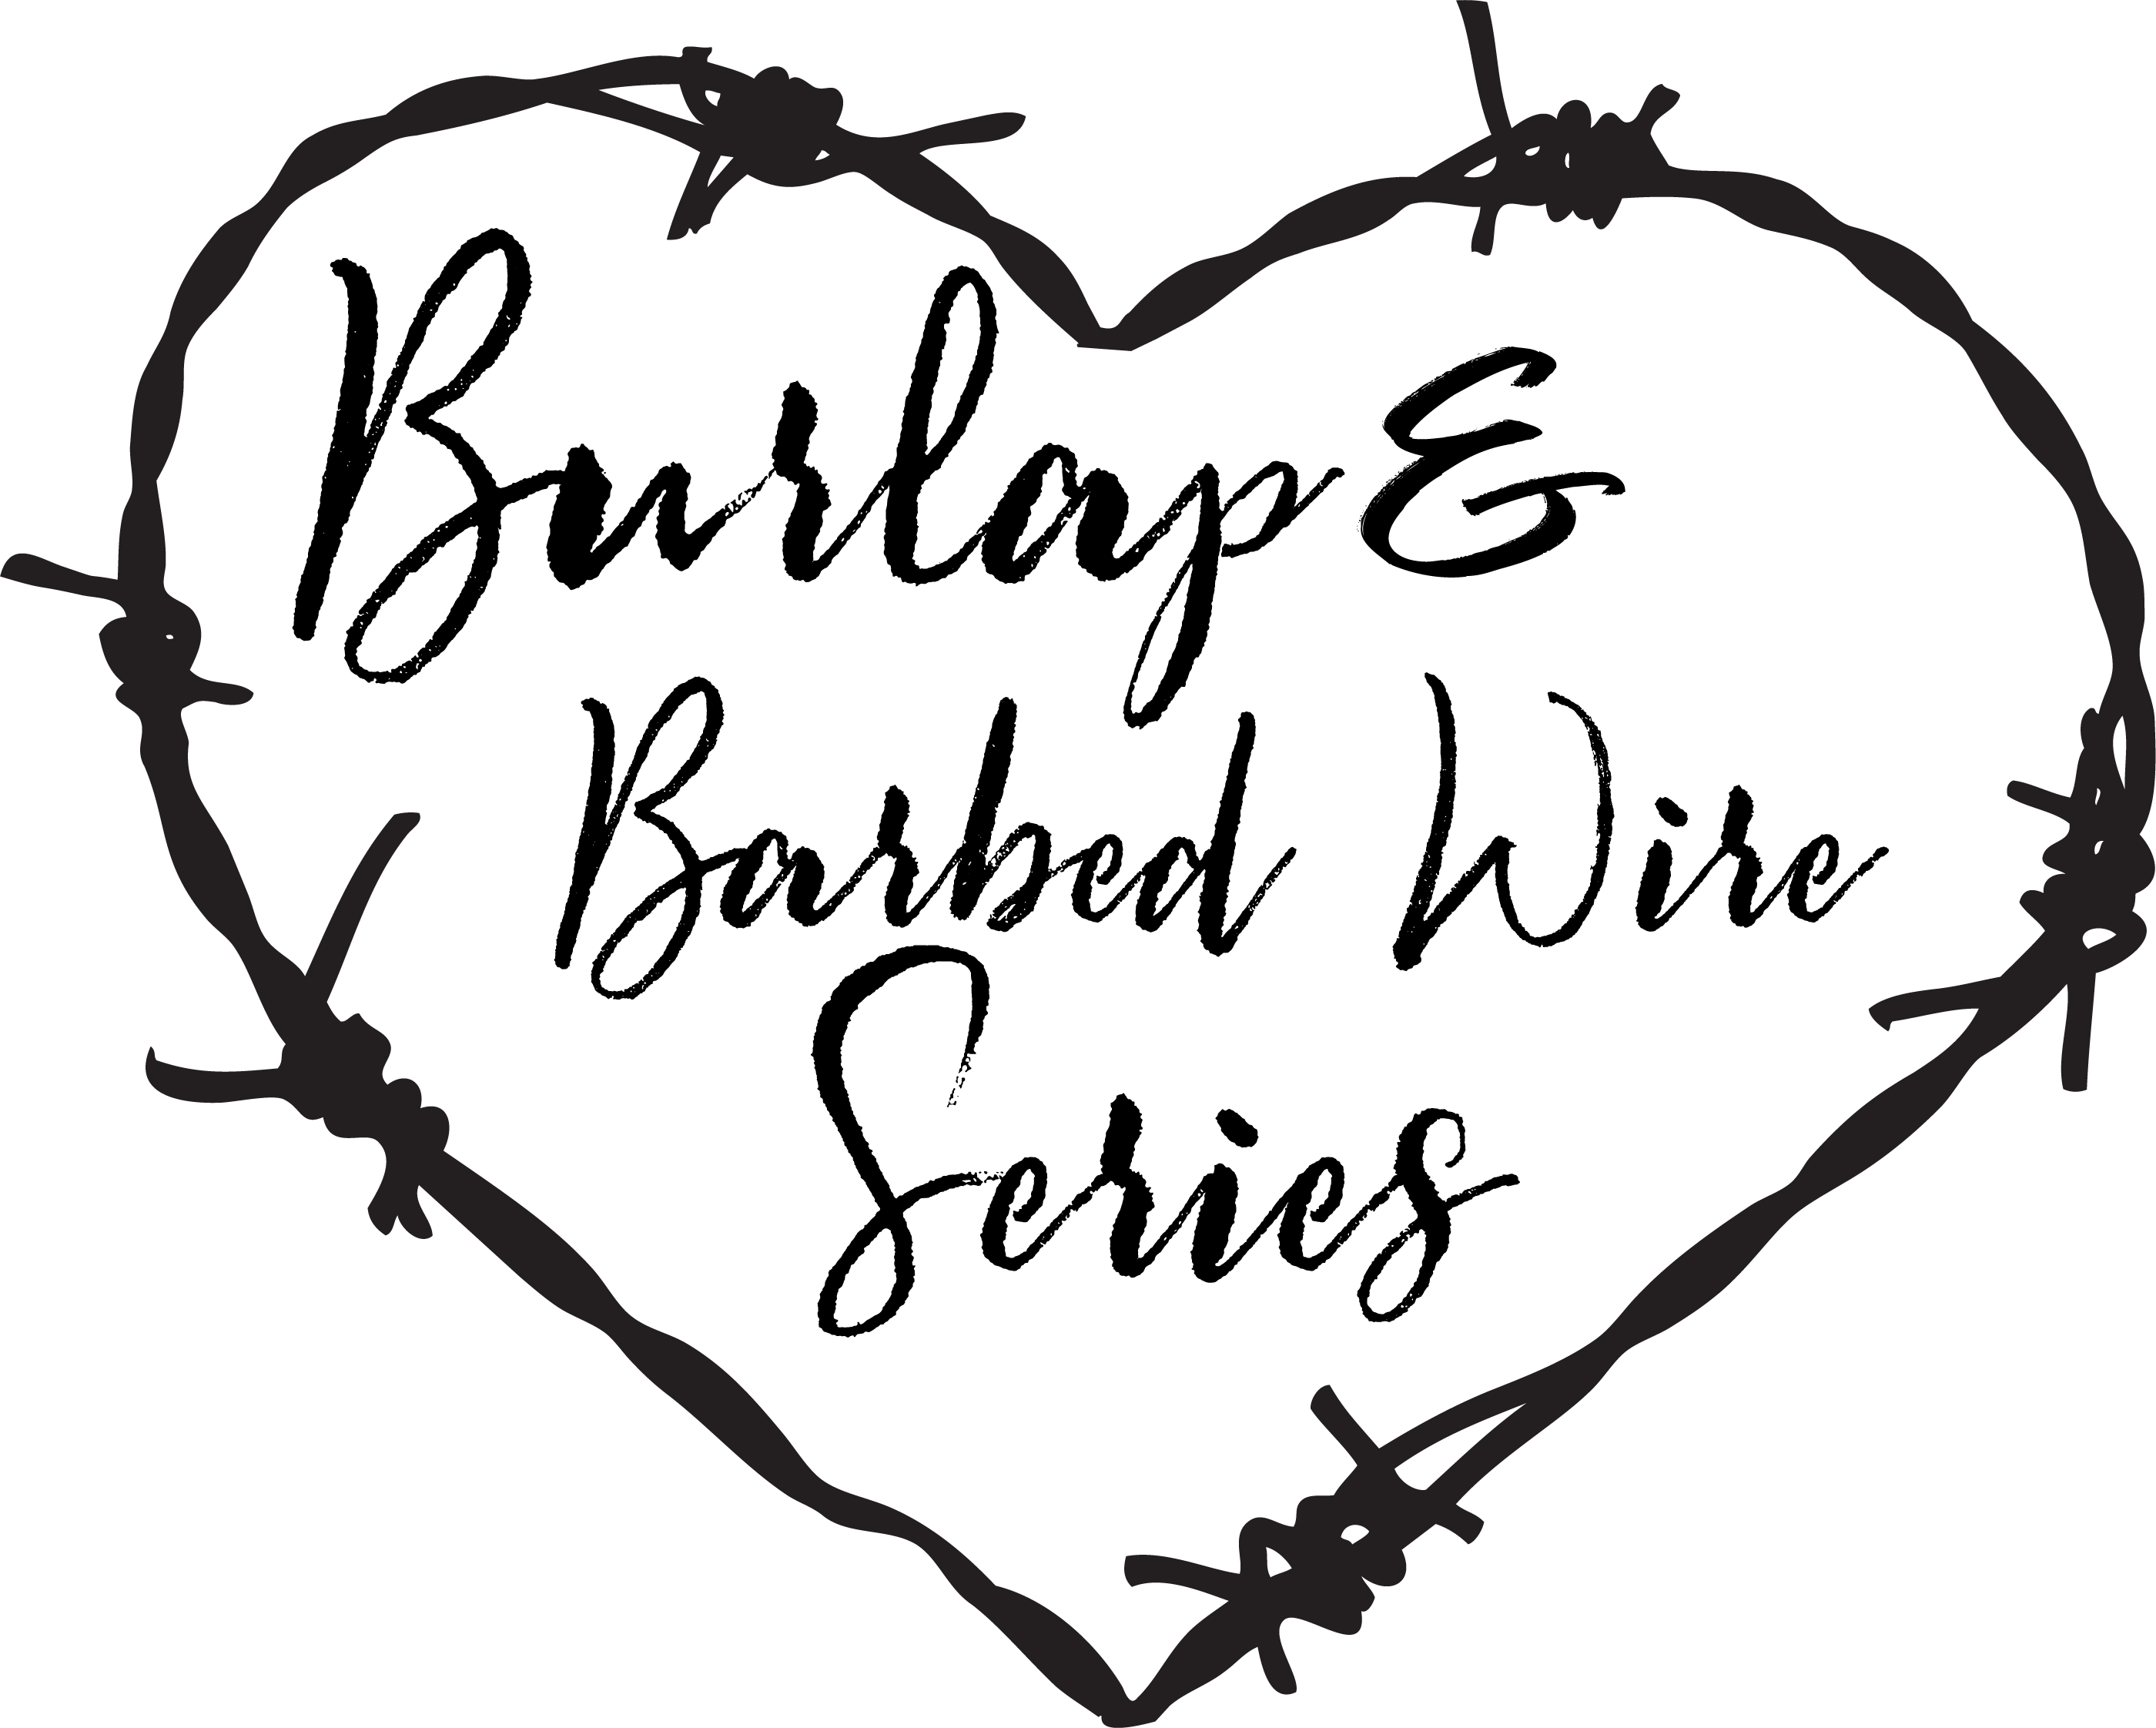 Ranch drawing romantic. Barbed wire clipart sketches